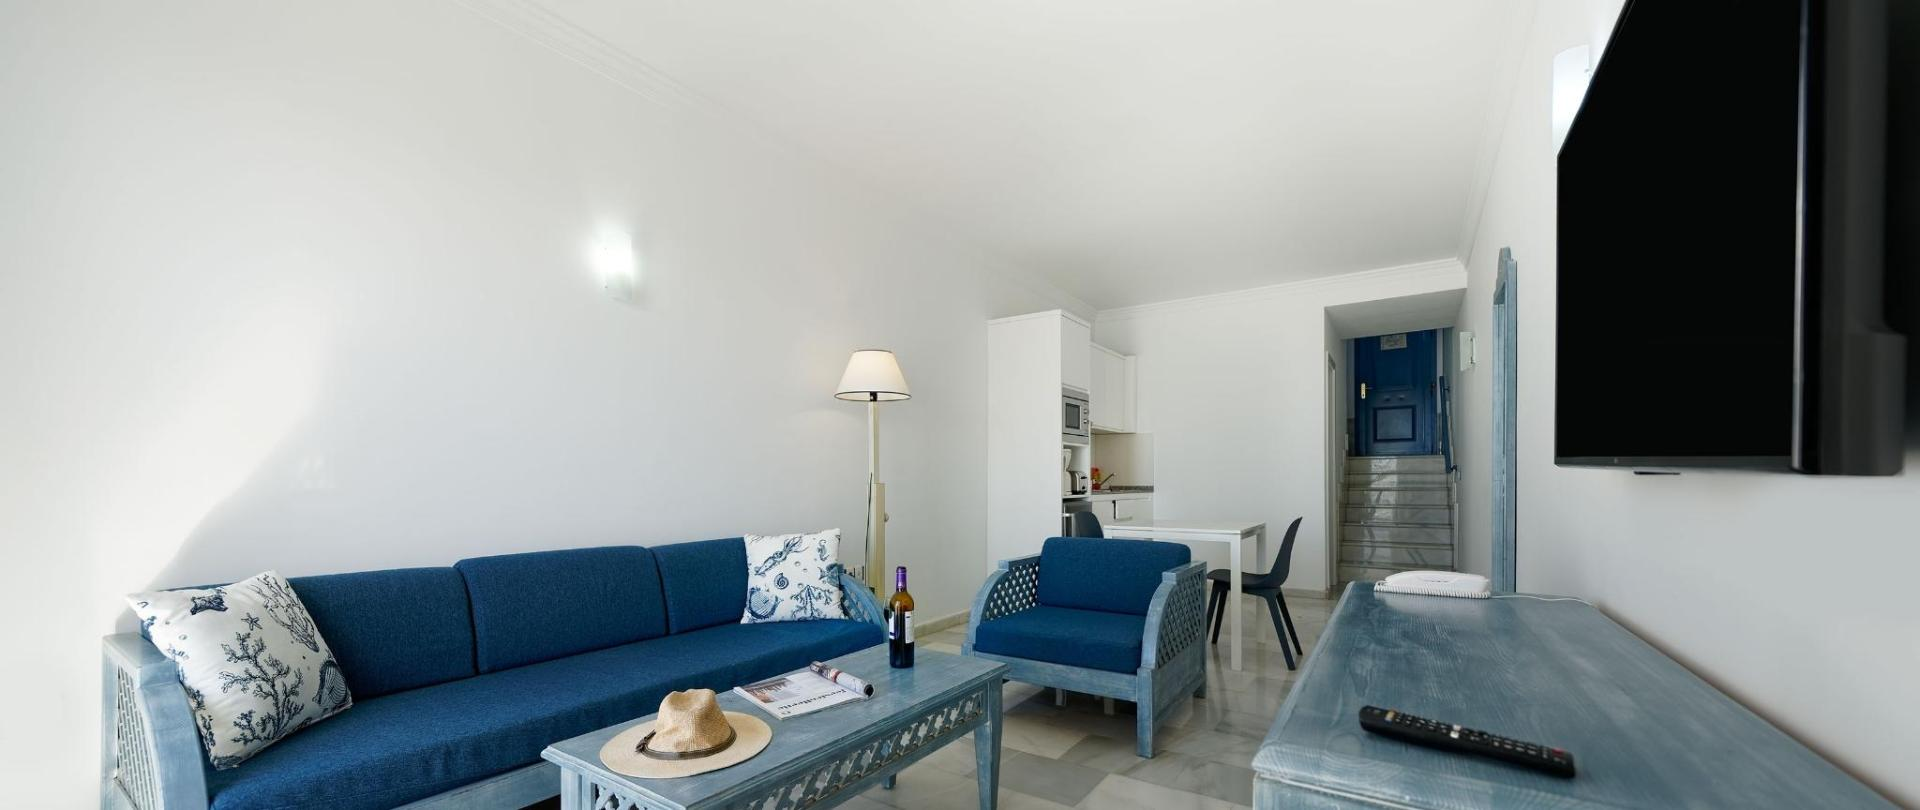 Livingroom Apartment Igramar Morro Jable